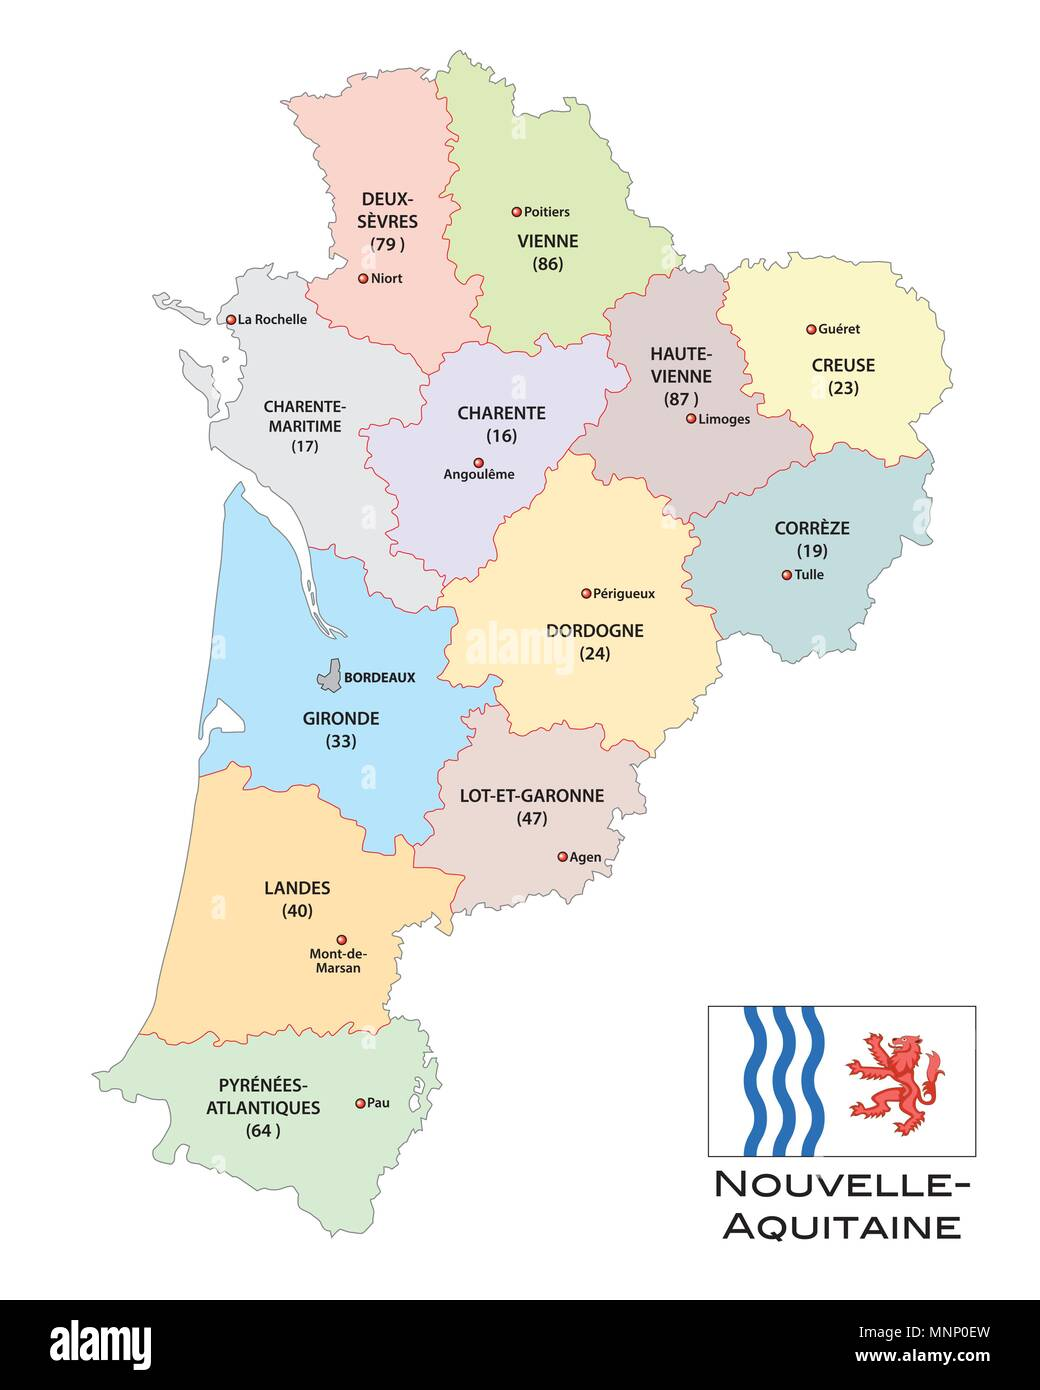 And Political Vector Map Of The Region Nouvelle Aquitaine With Flag